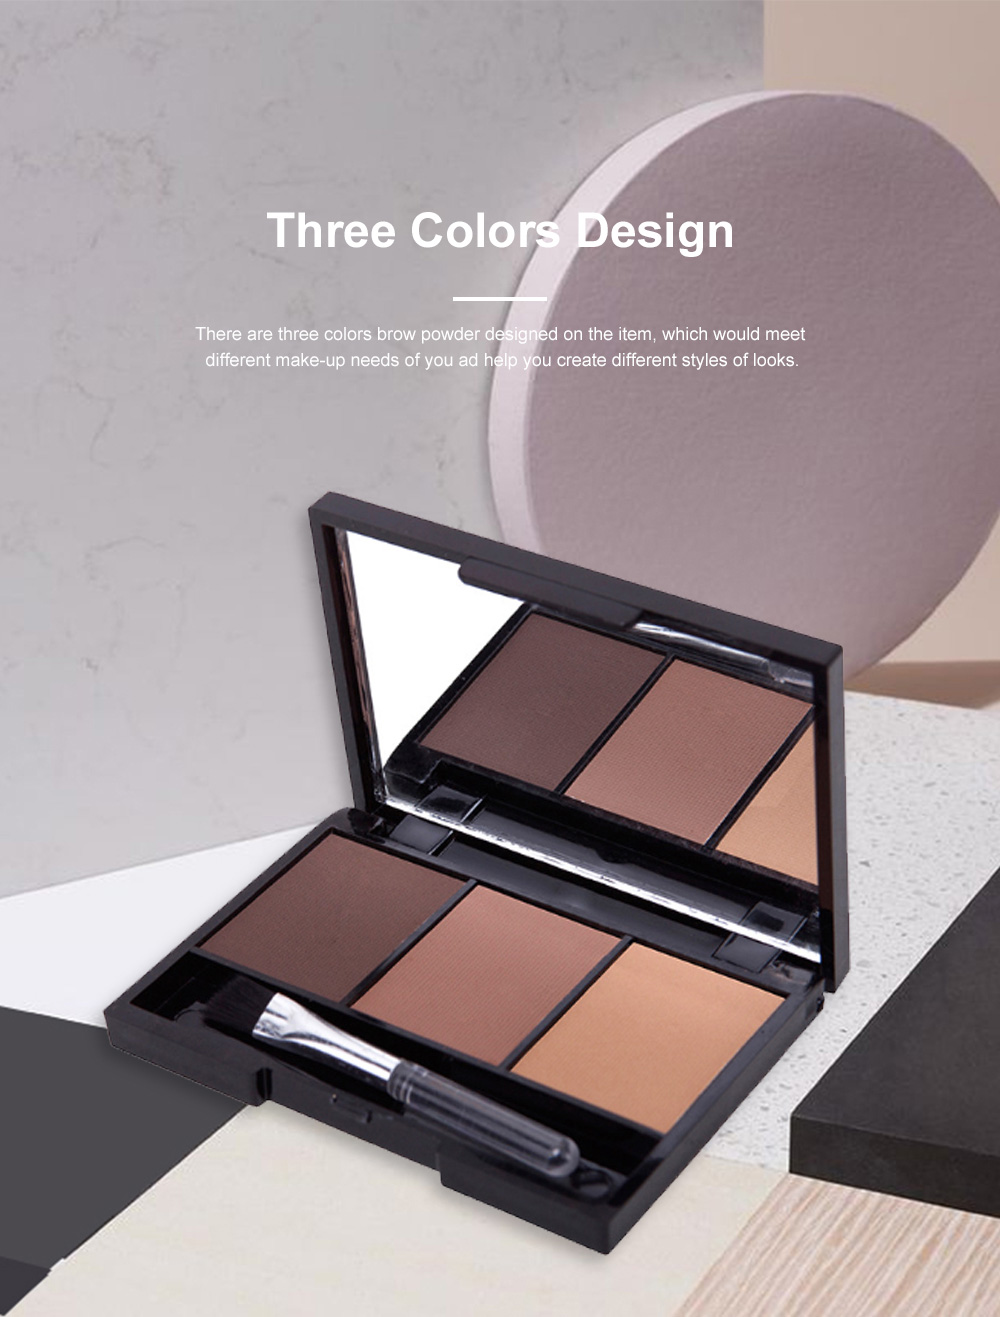 Delicate Fine Three Colors Brow Powder with Brush Mirror Enduring Easy Coloring Eyebrow Makeup Tool Accessories 1